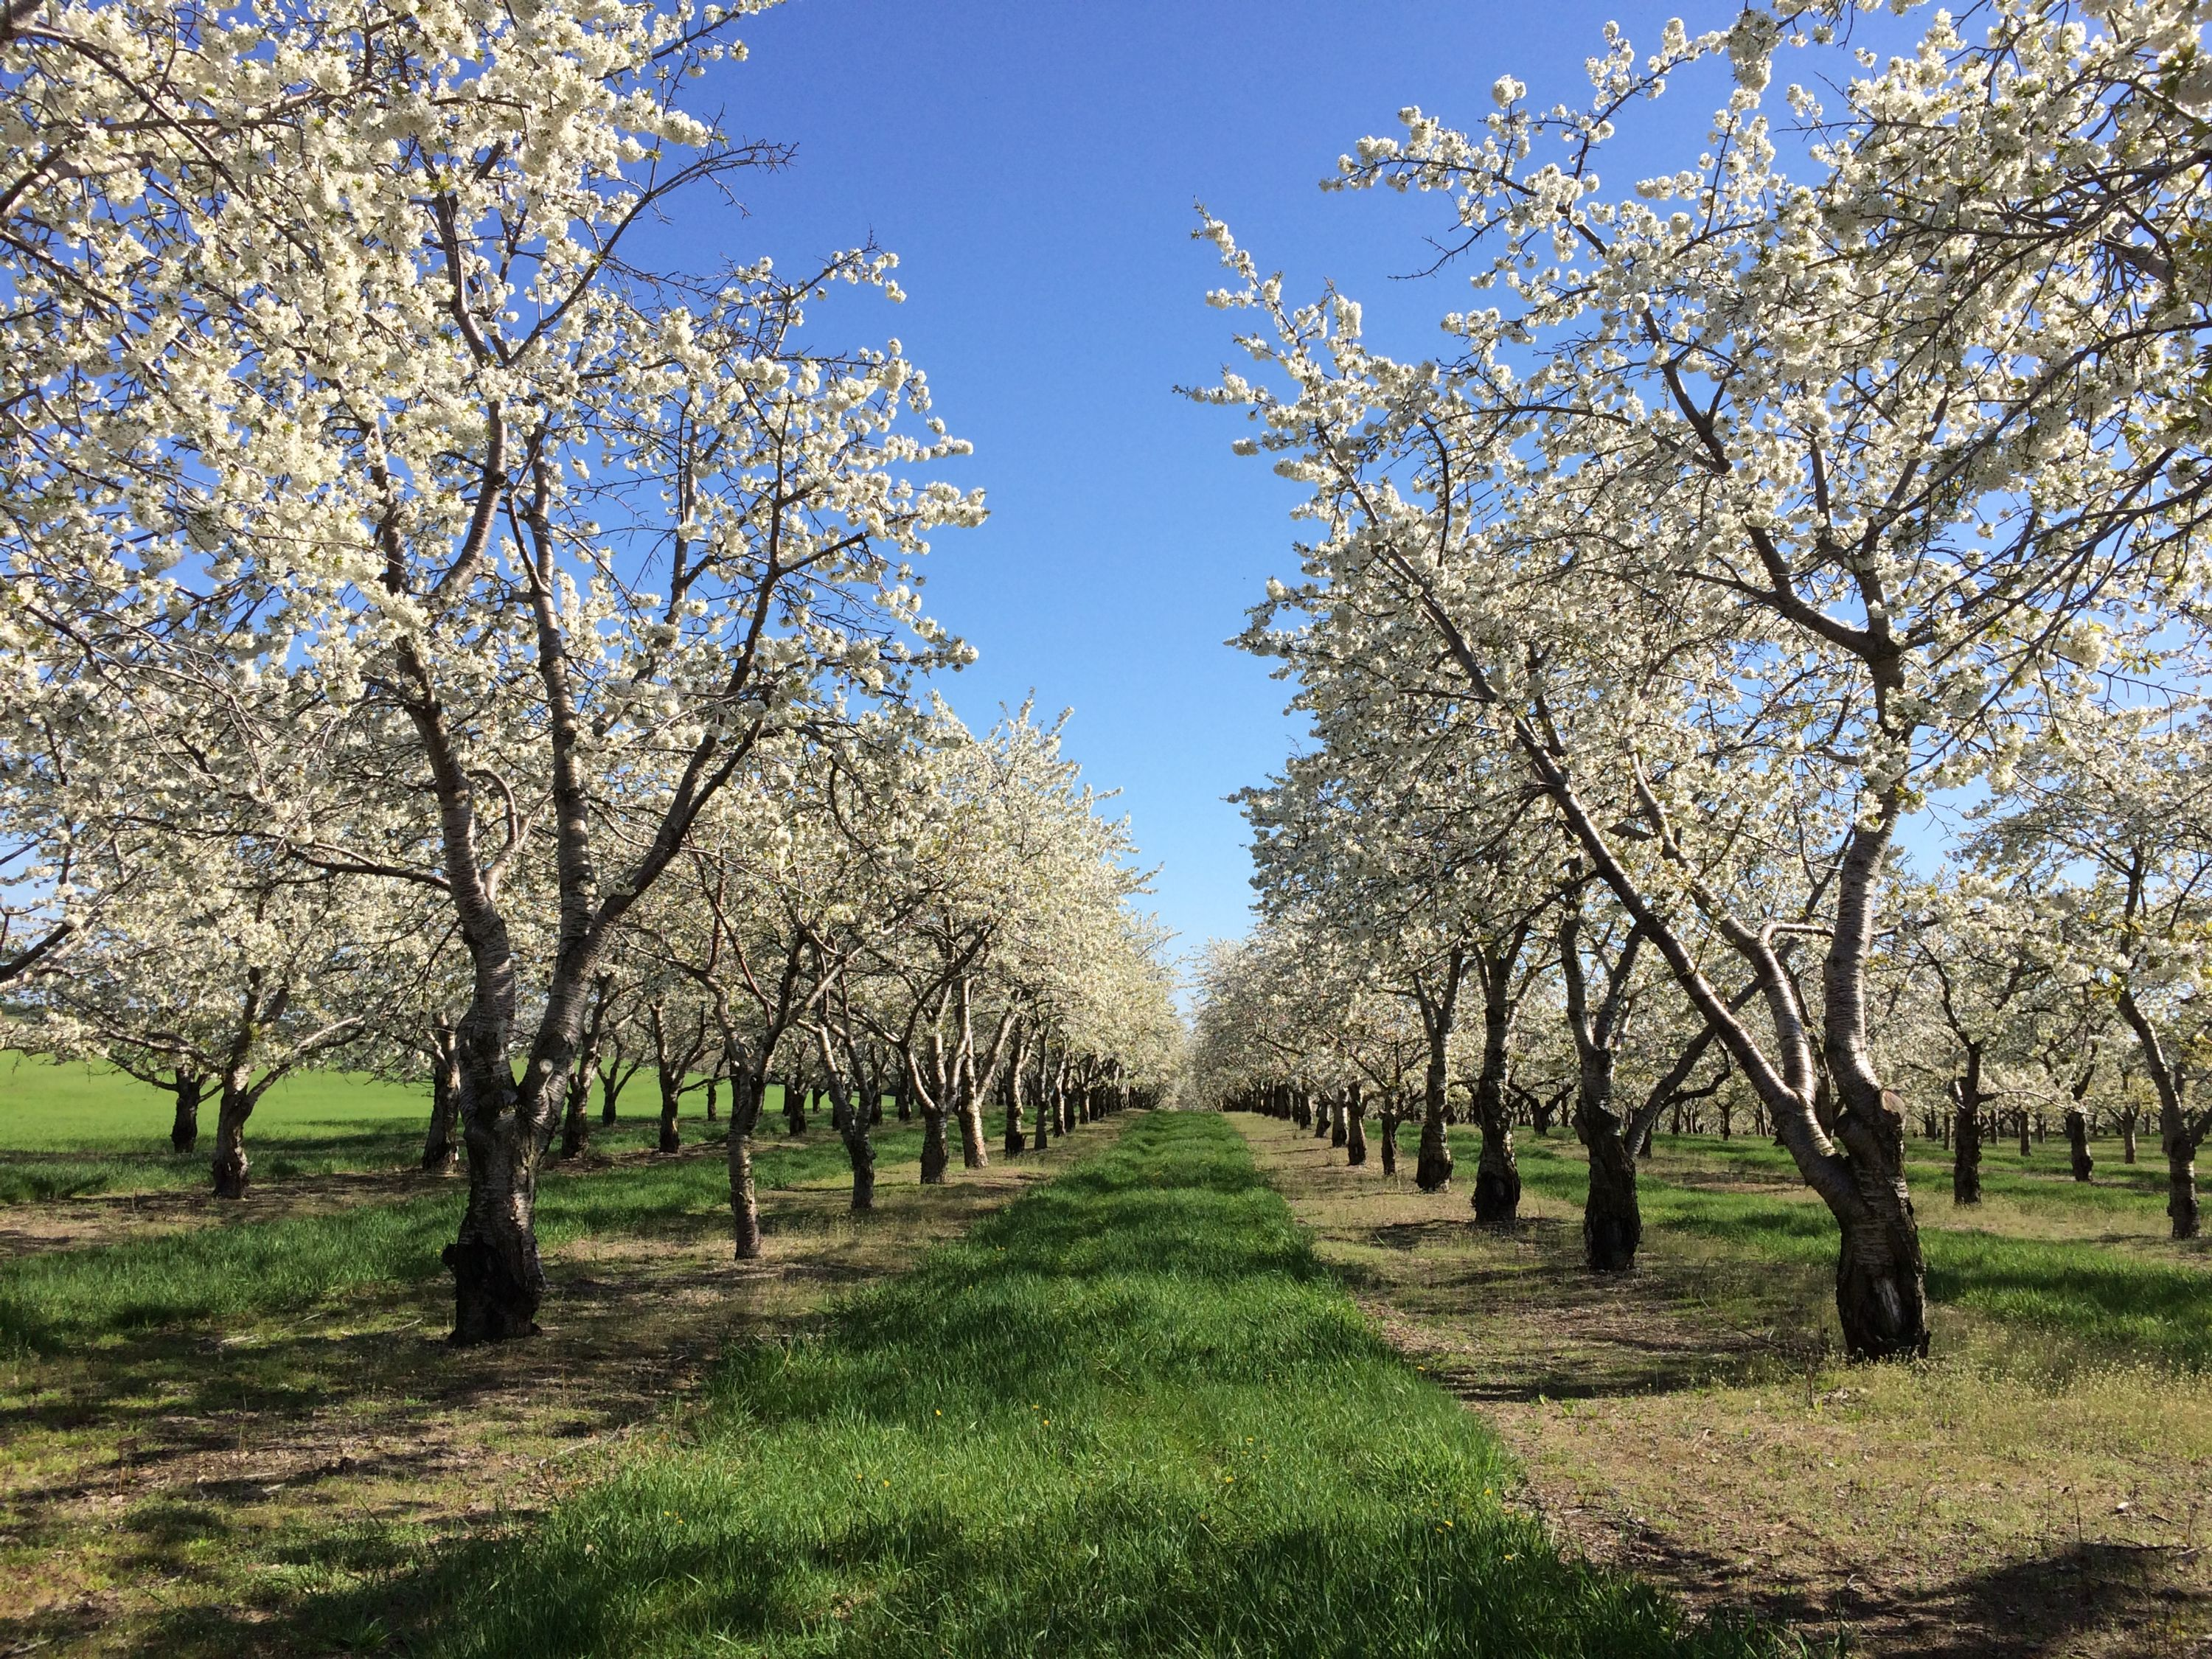 Northern Michigan sweet cherry orchard in bloom; full white blossoms but no leaves yet.